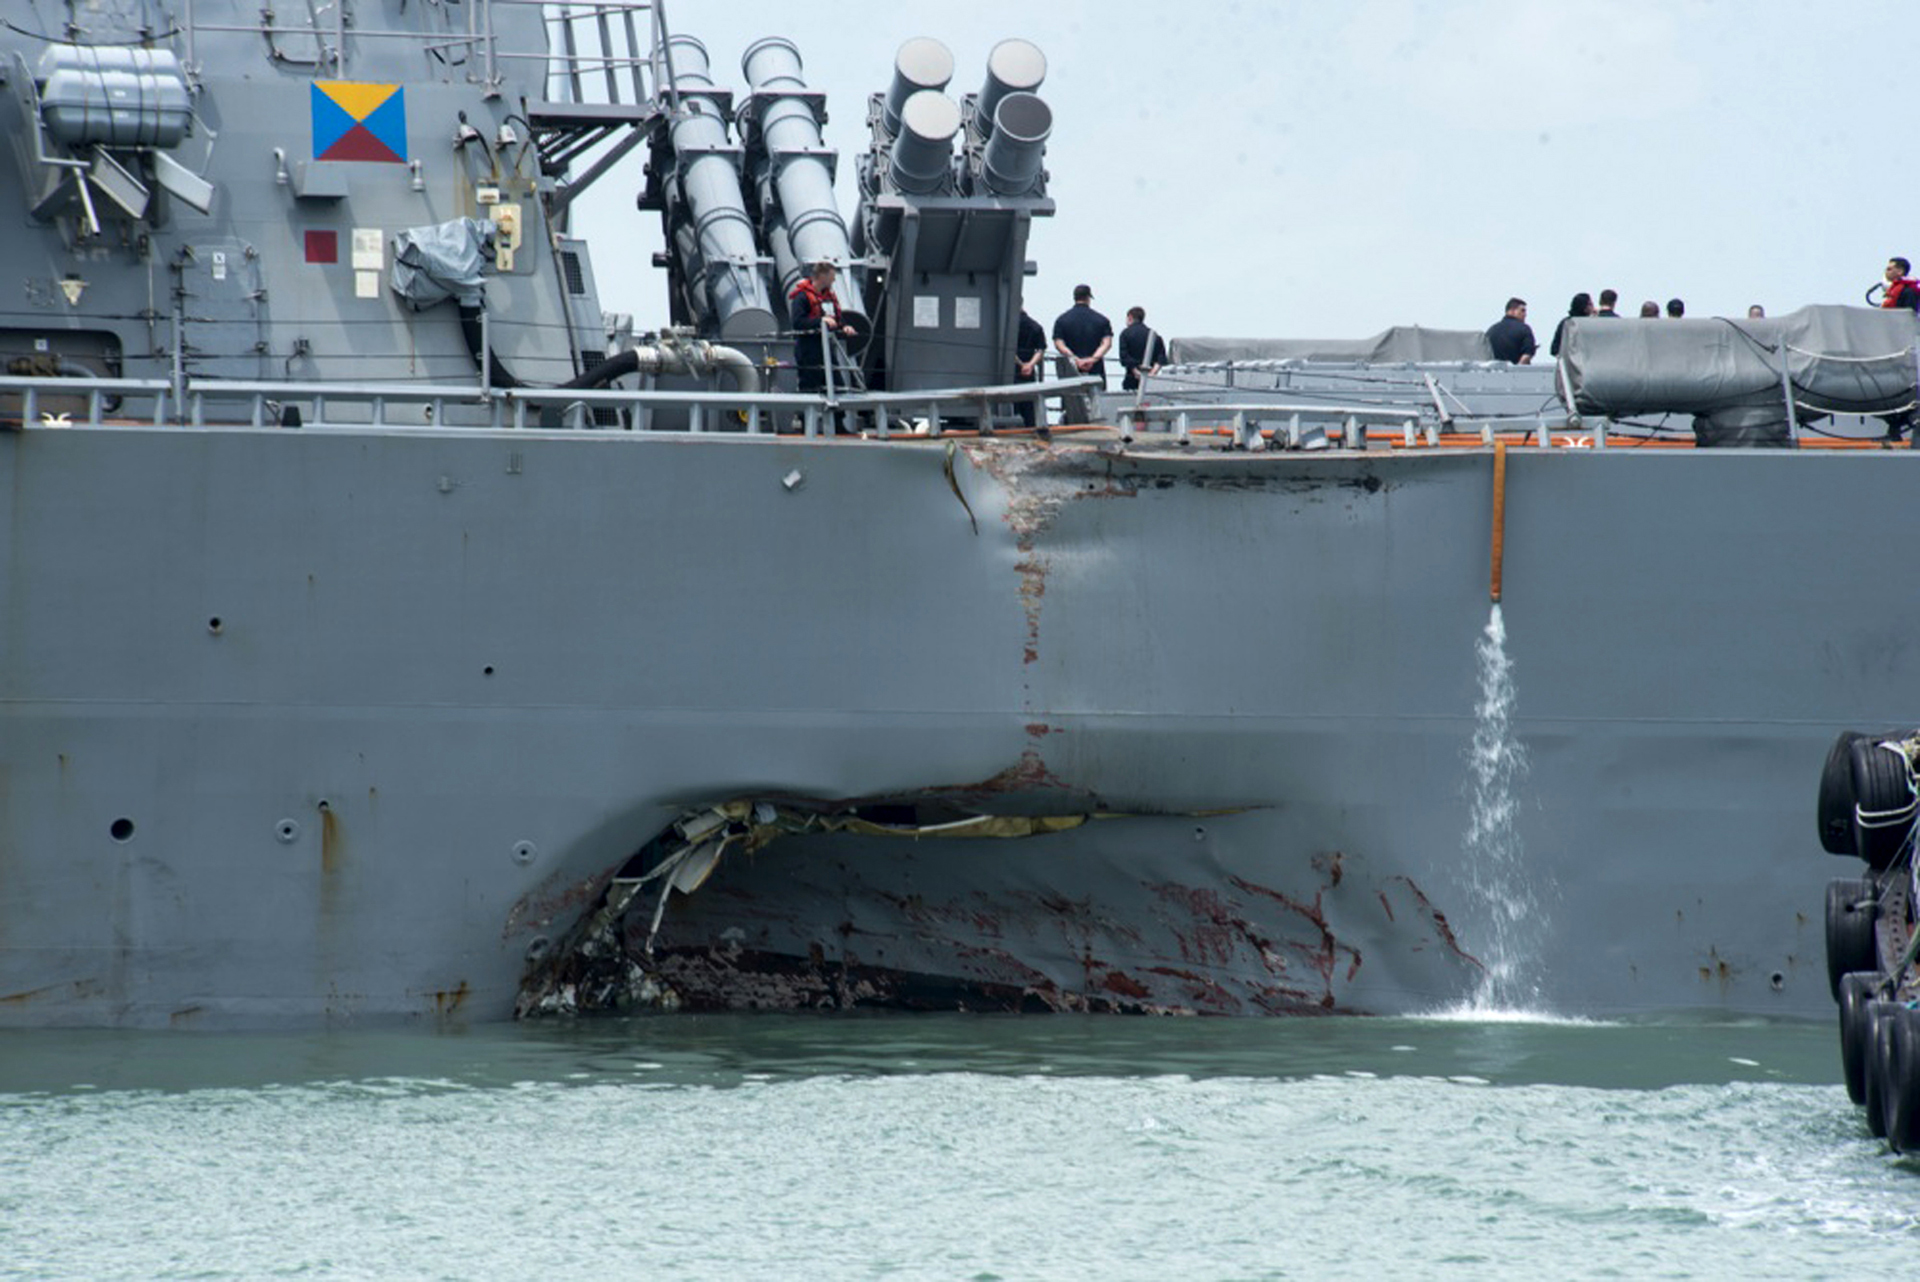 Stricken destroyer John S. McCain arrives in Singapore, 10 crew still missing